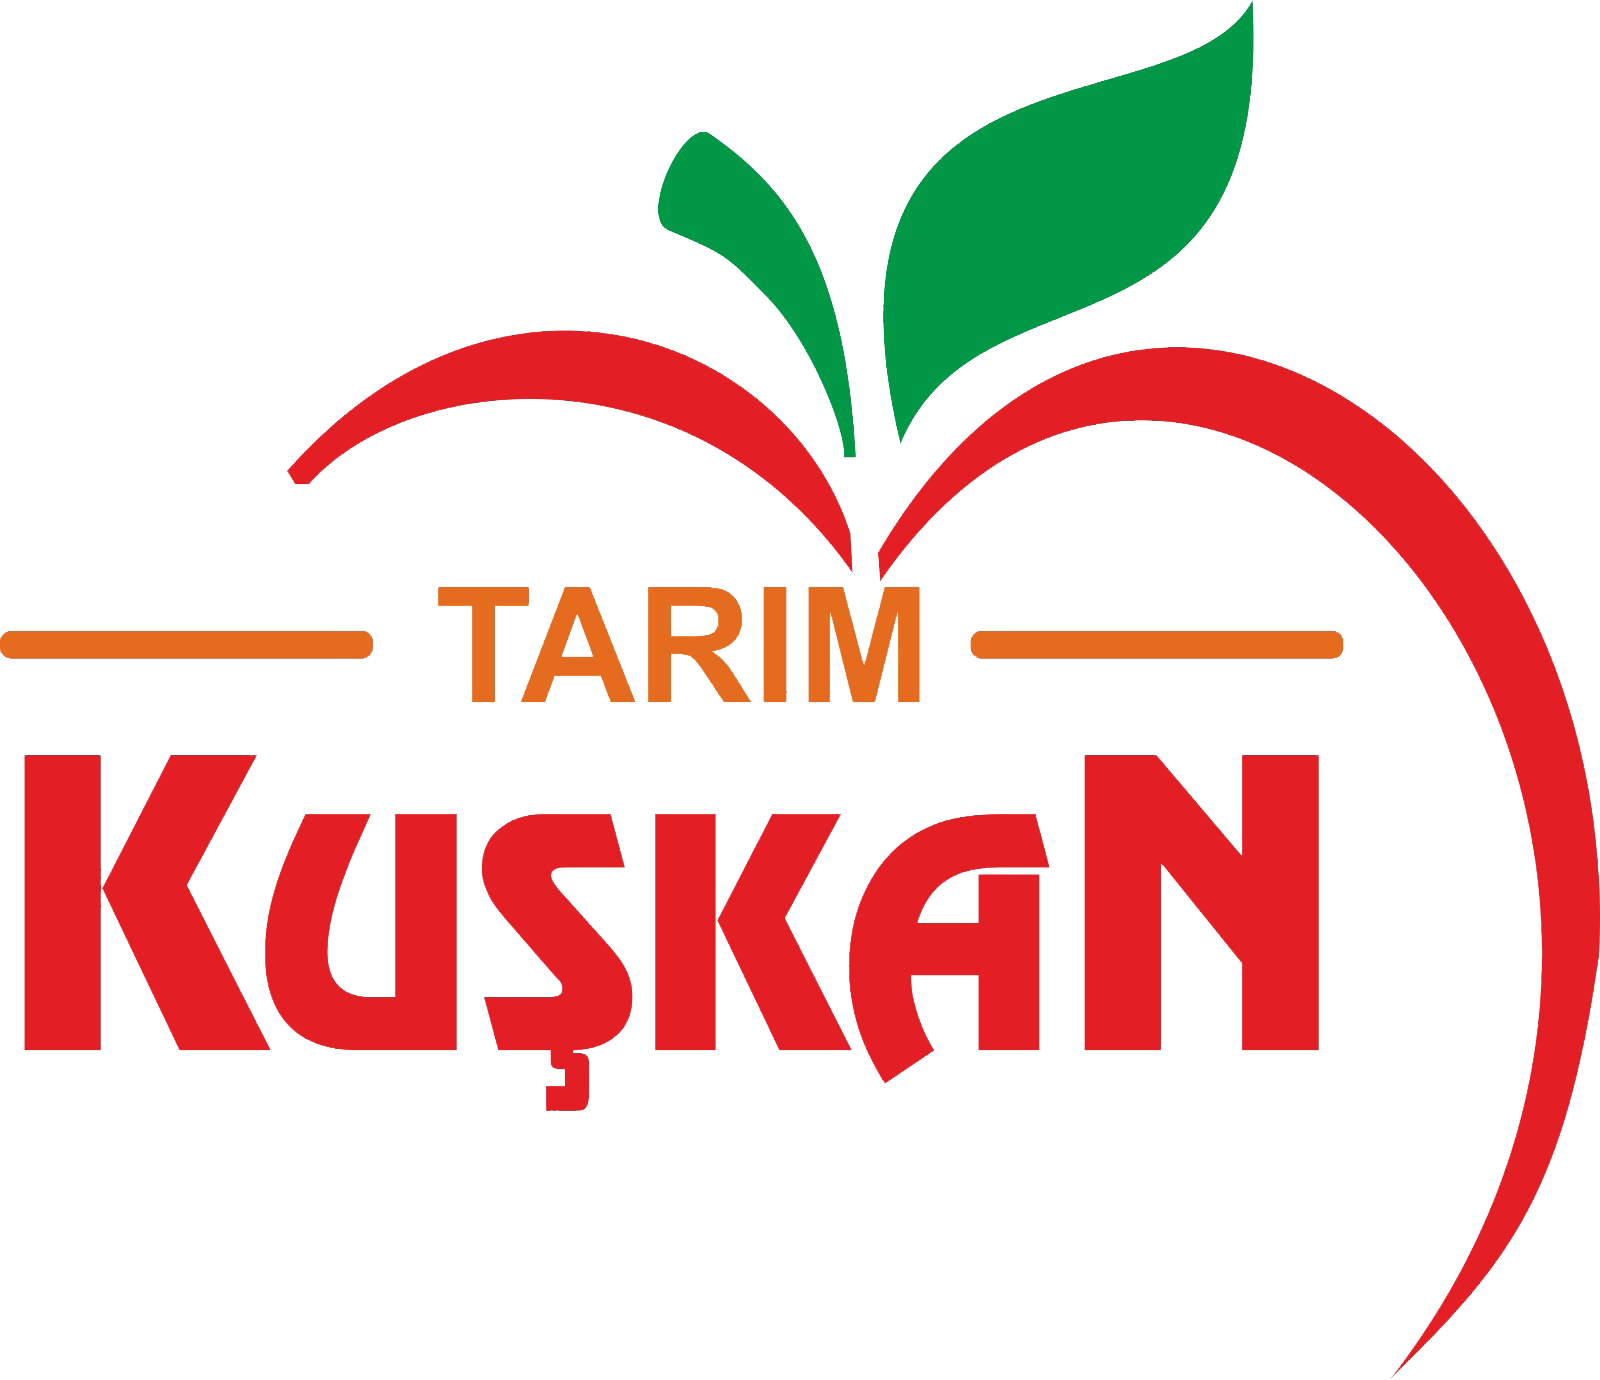 My Account - image kuskan on https://kuskantarim.com